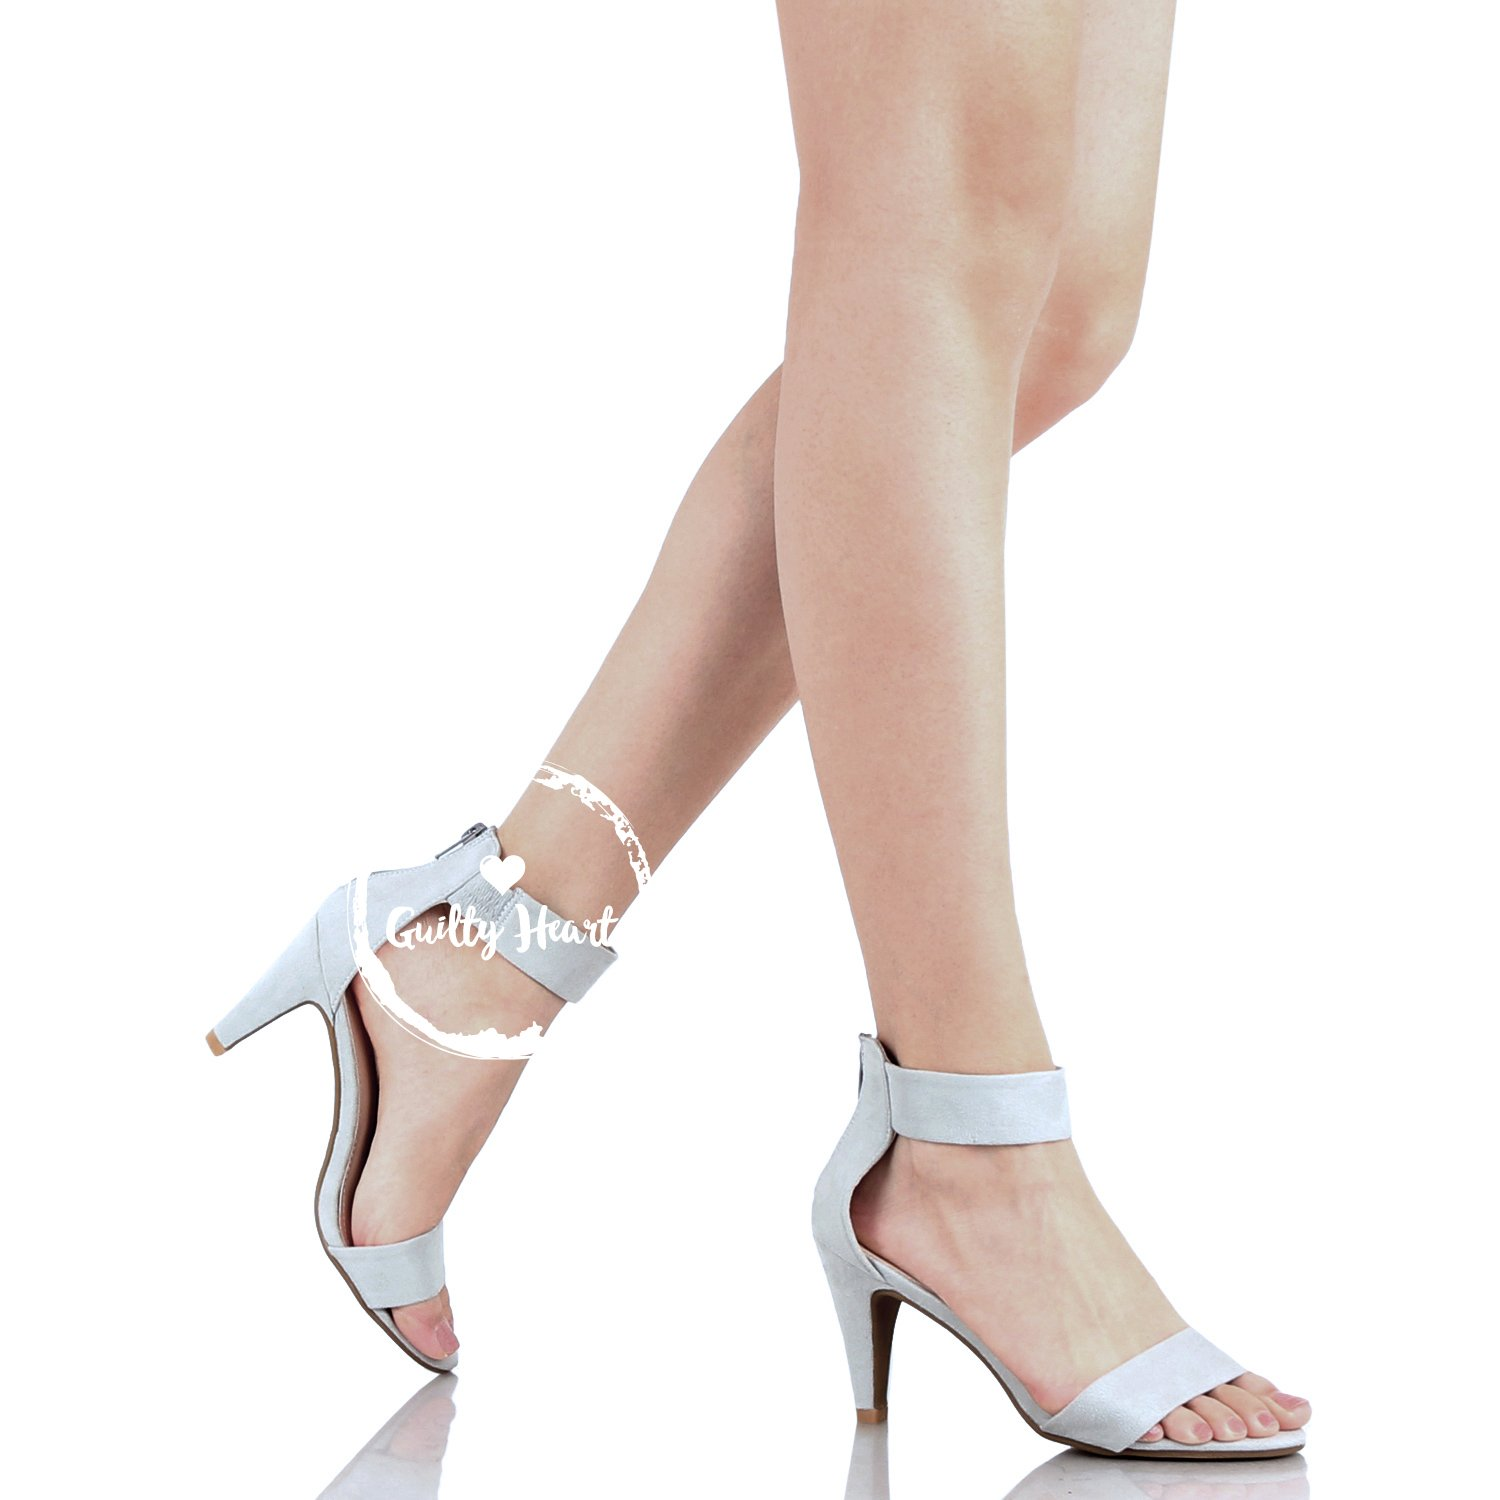 comforter step steps to high comfortable in how heels with pictures stilettos feel